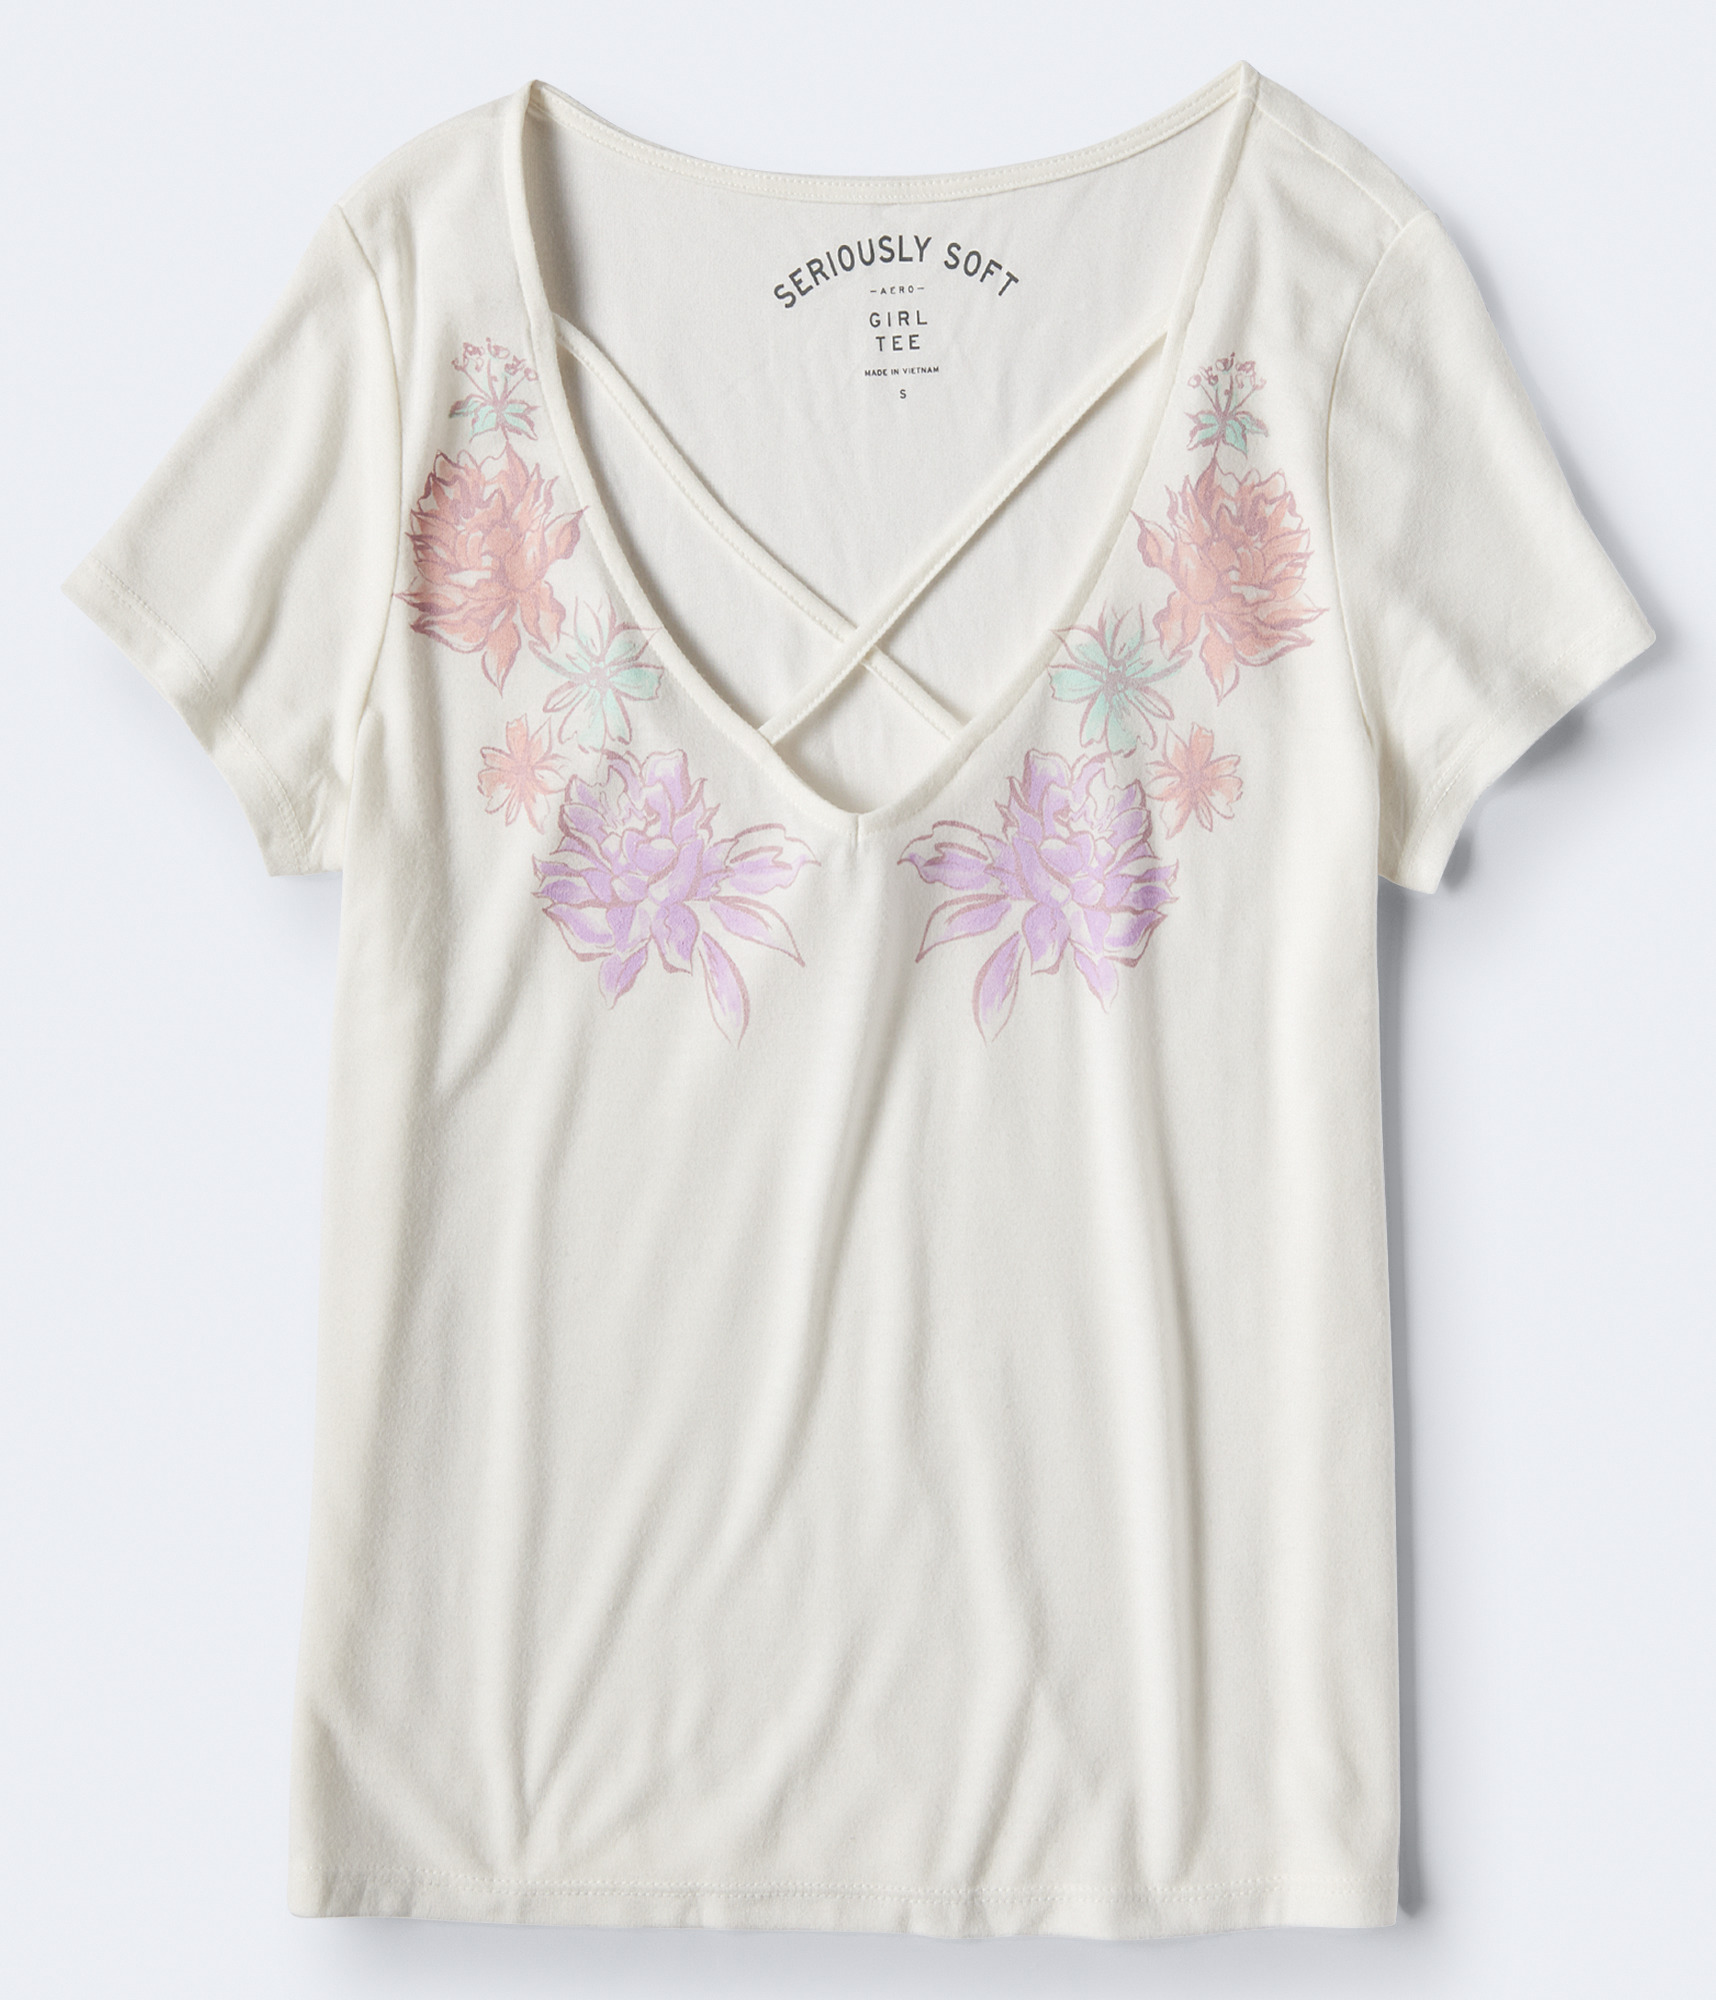 Aeropostale Seriously Soft Floral Crisscross Girl Tee - Floral White, Large